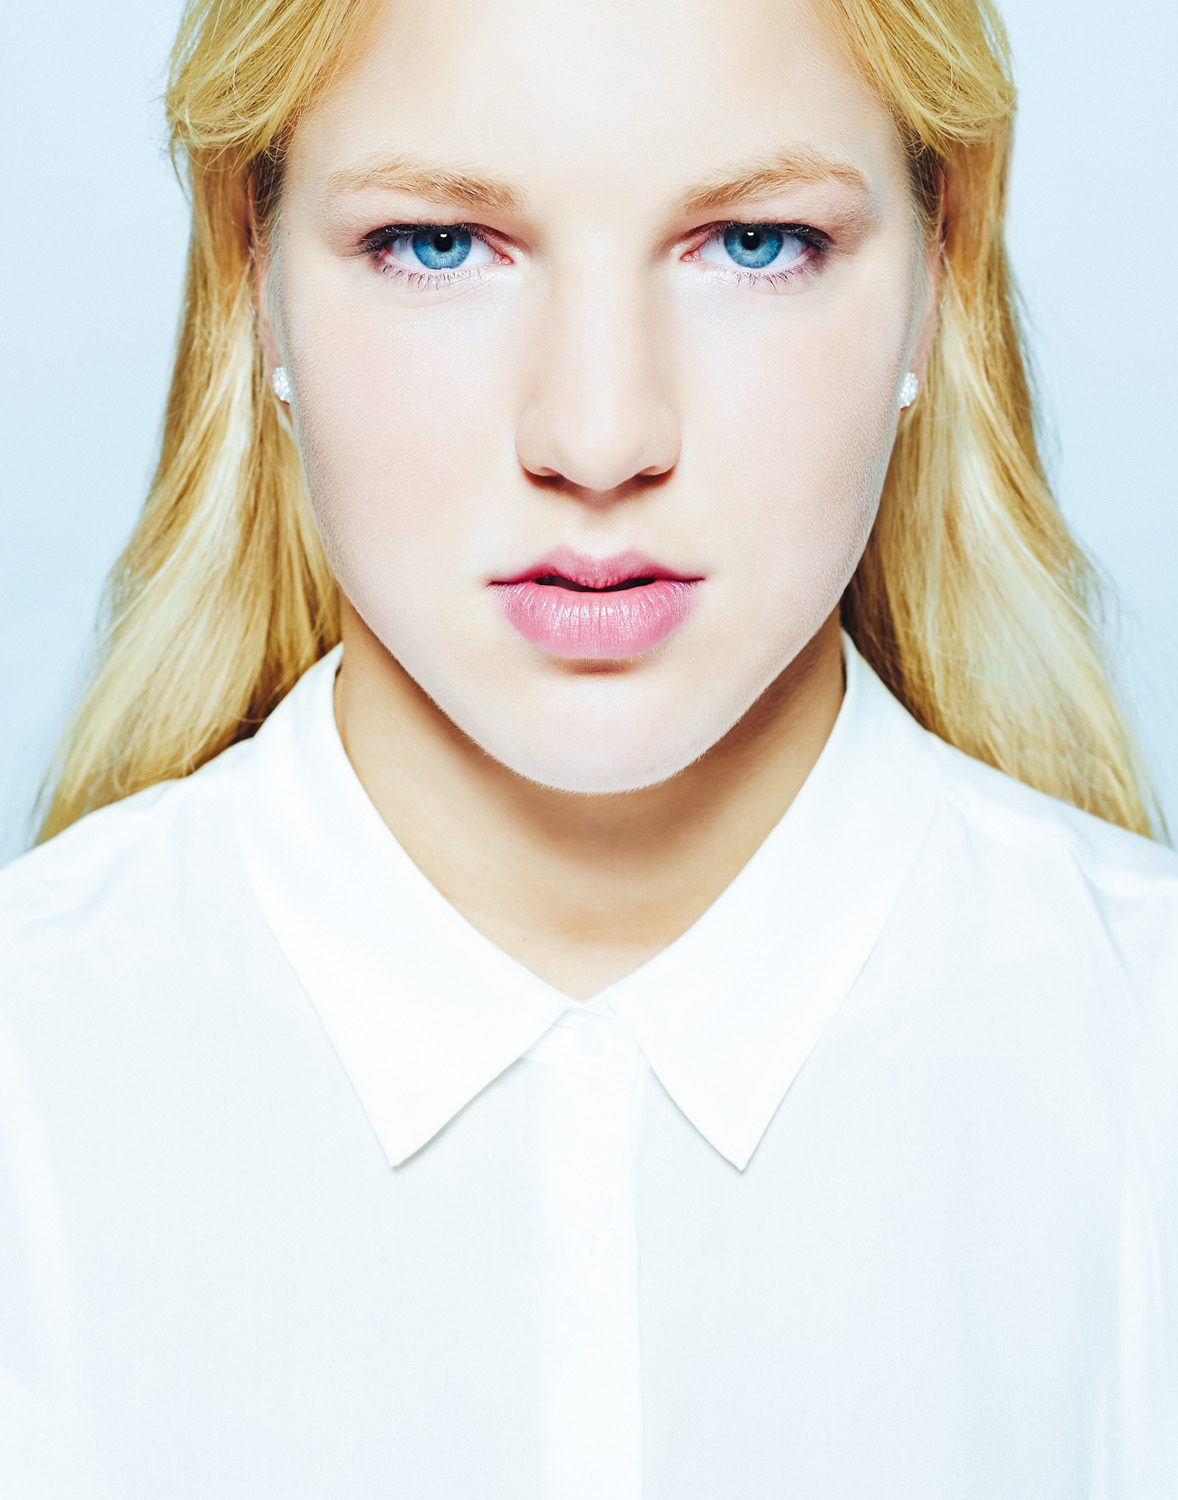 <p>Rūta Meilutytė<br /> Swimmer, Olympic, world, Europe<br /> gold medalist<br /> Lithuania<br /> 2013 </p>